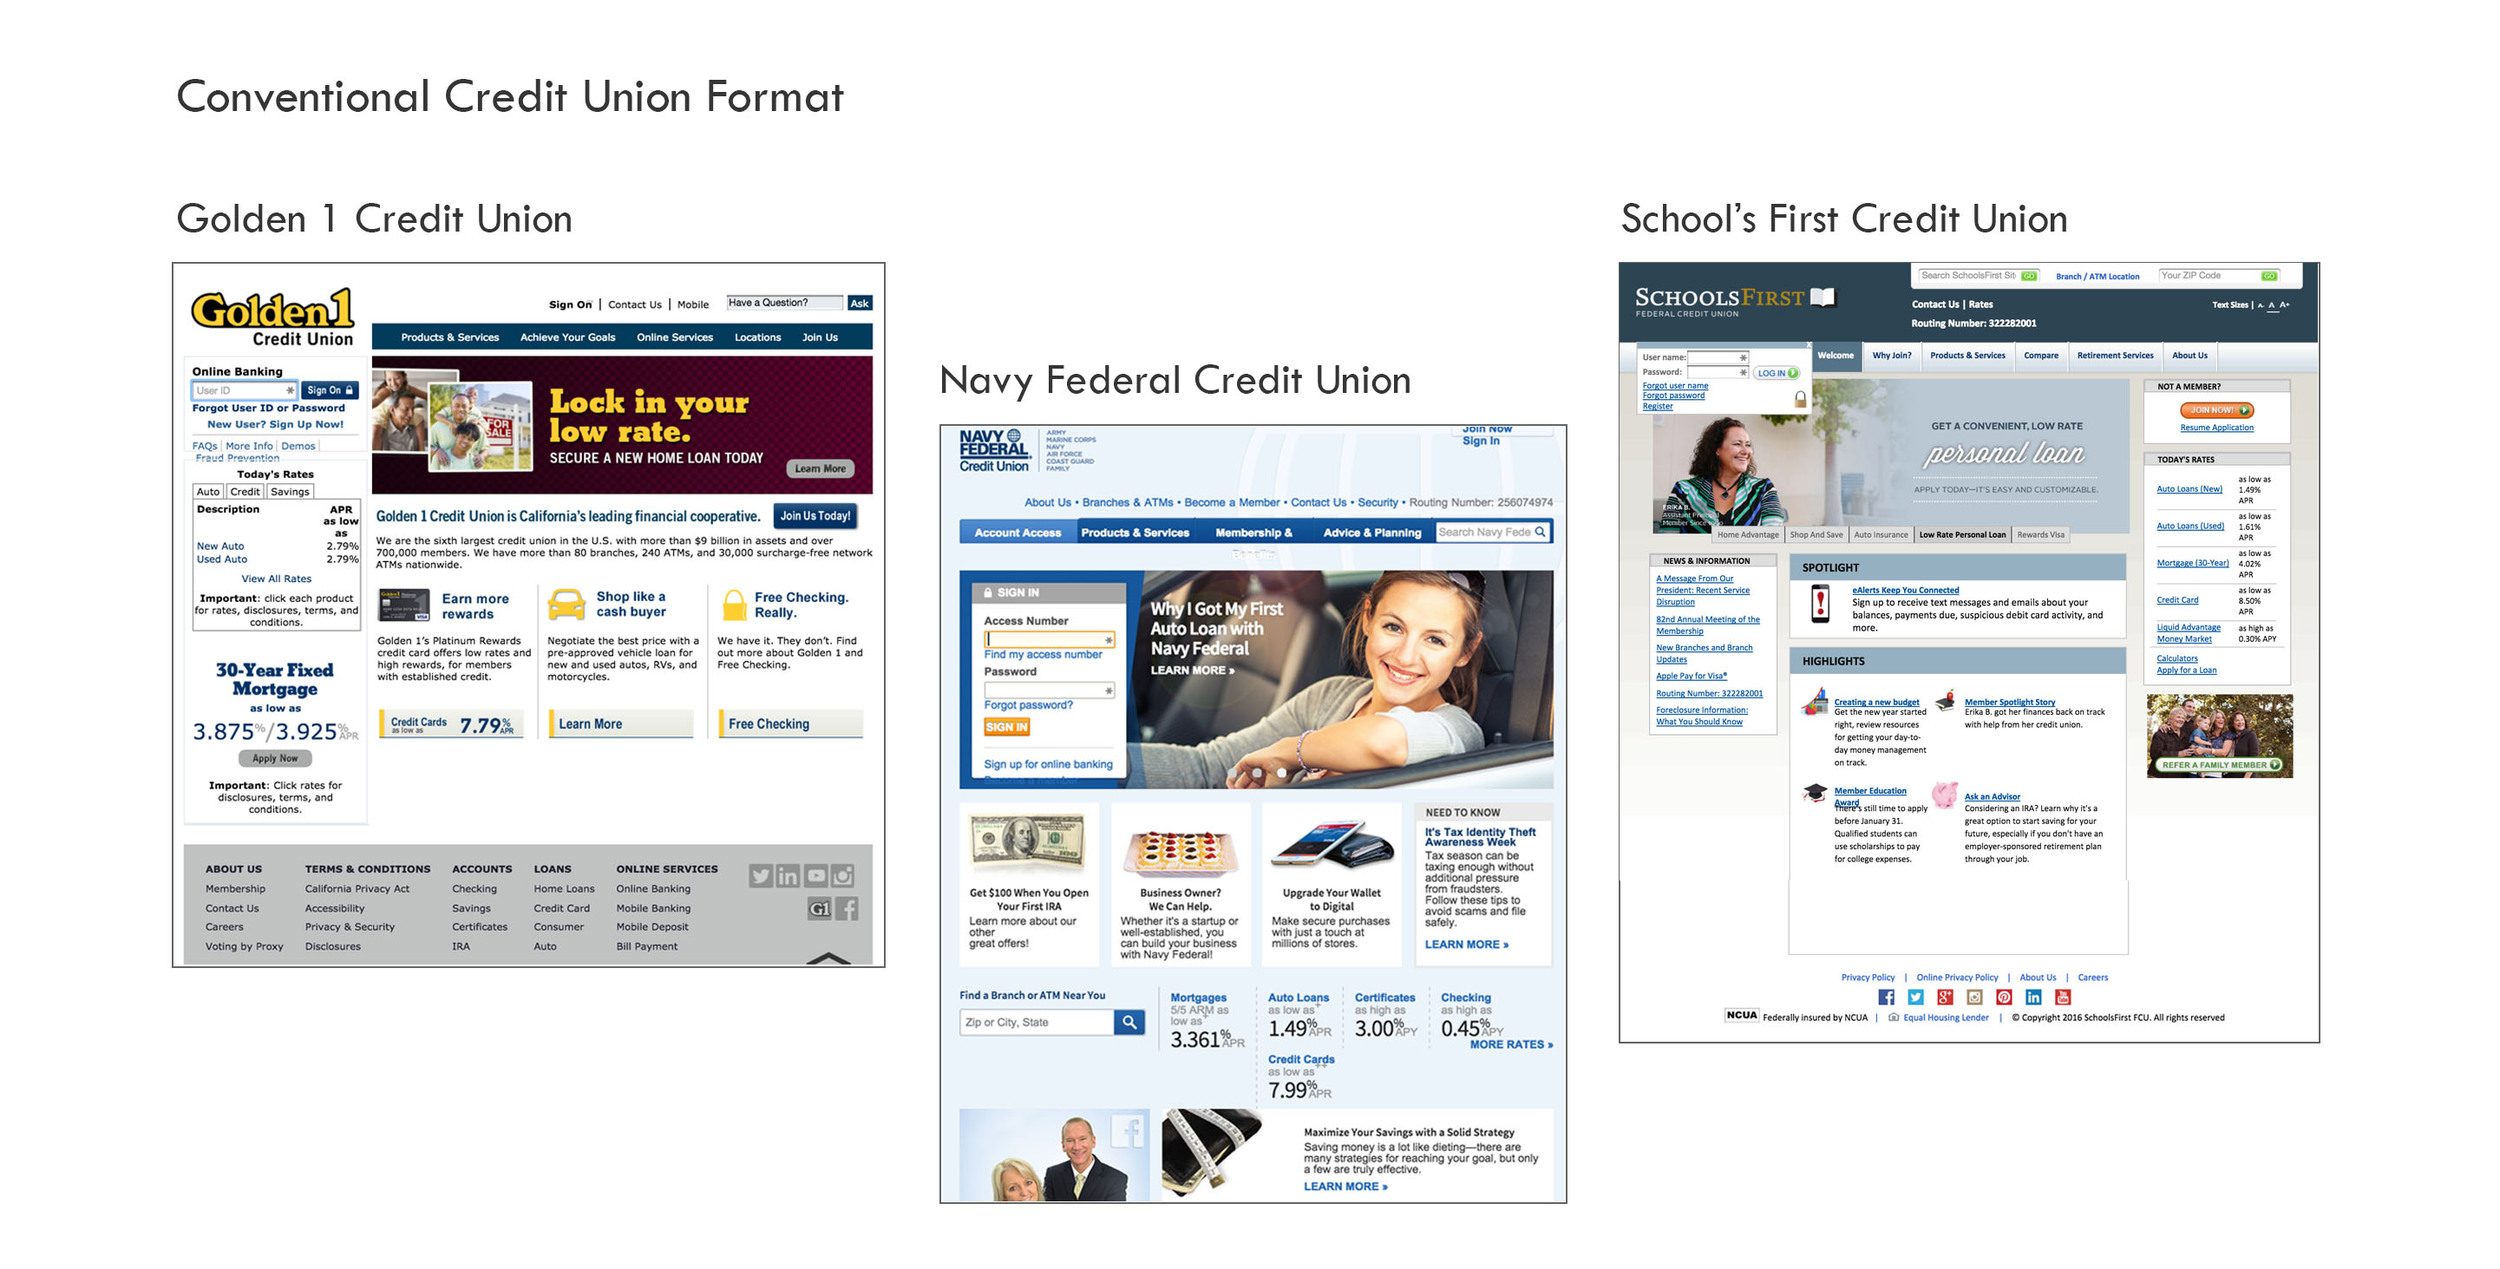 Conventional CU formats are static, informational, full of textual links and with minimal visual and interactivity.